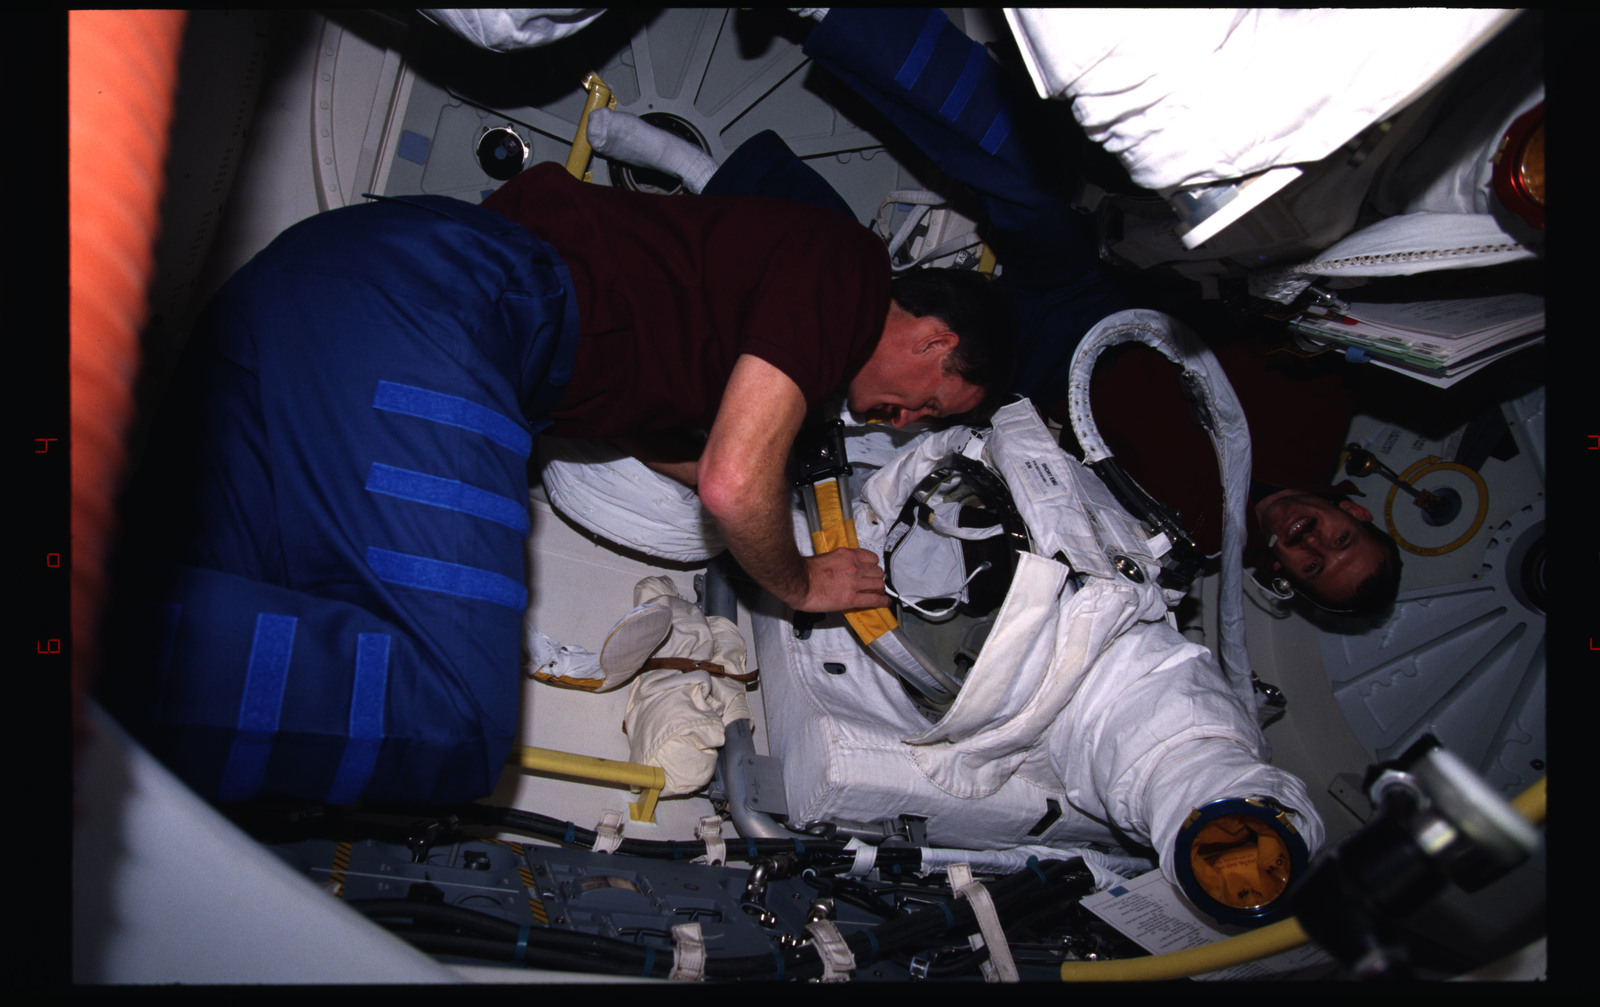 STS082-333-016 - STS-082 - Crewmember activities in the shuttle middeck and flight deck